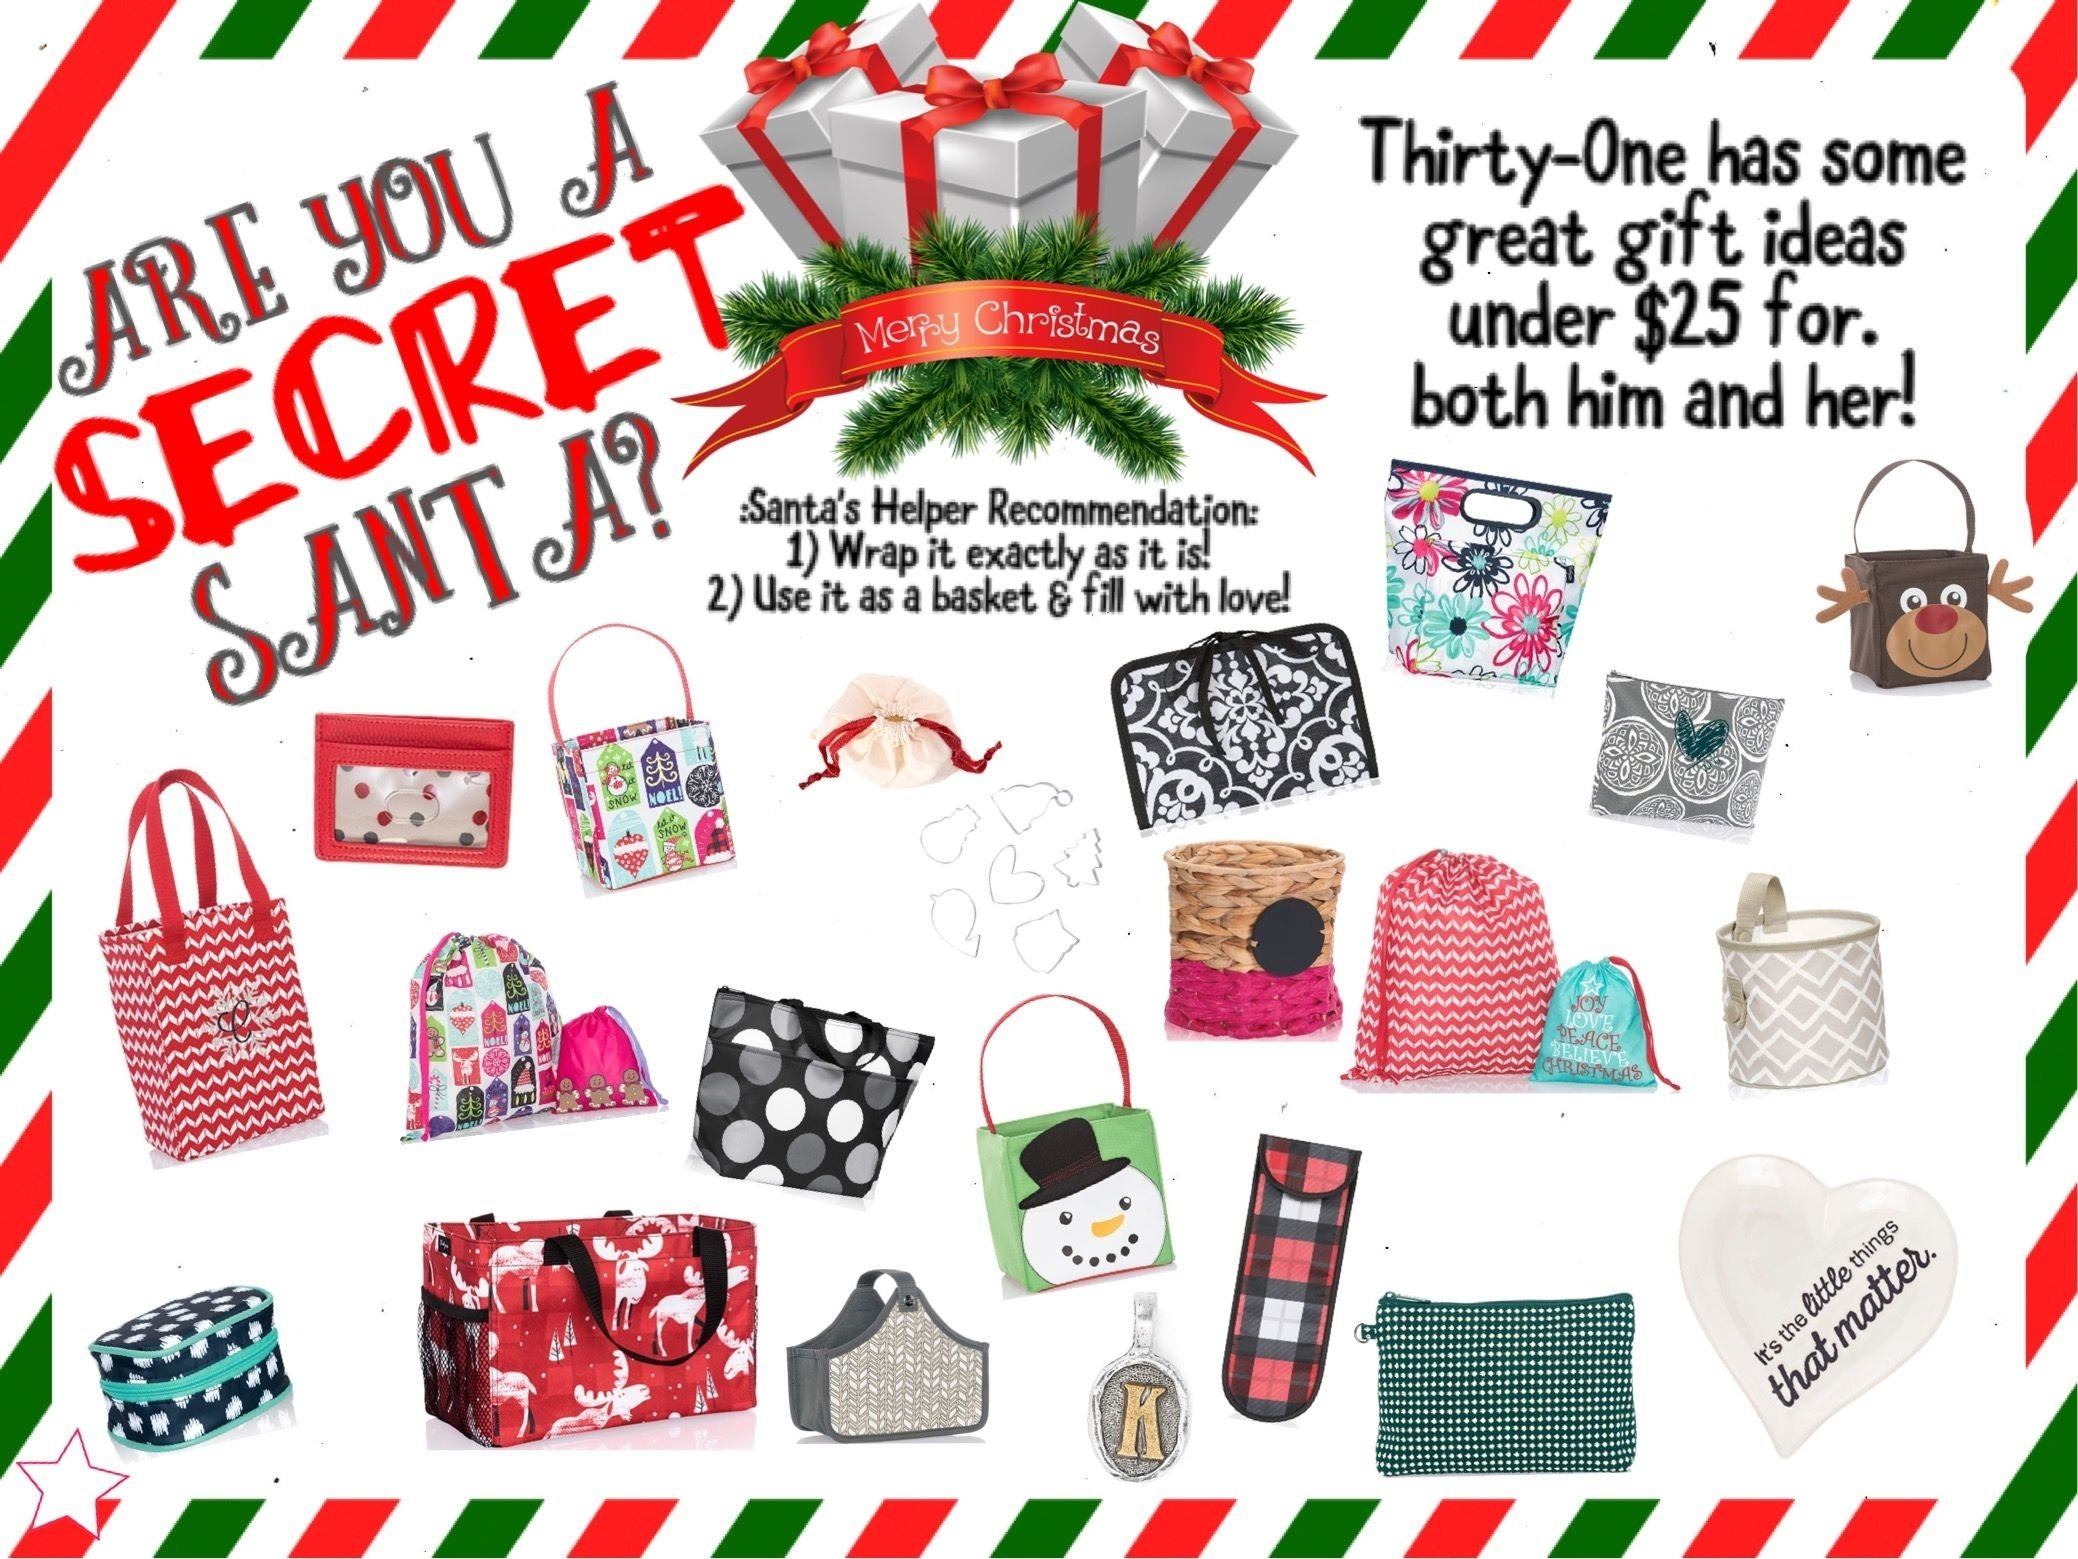 10 Unique Great Secret Santa Gift Ideas thirty one secret santa gifts under 25 graphic for facebook party